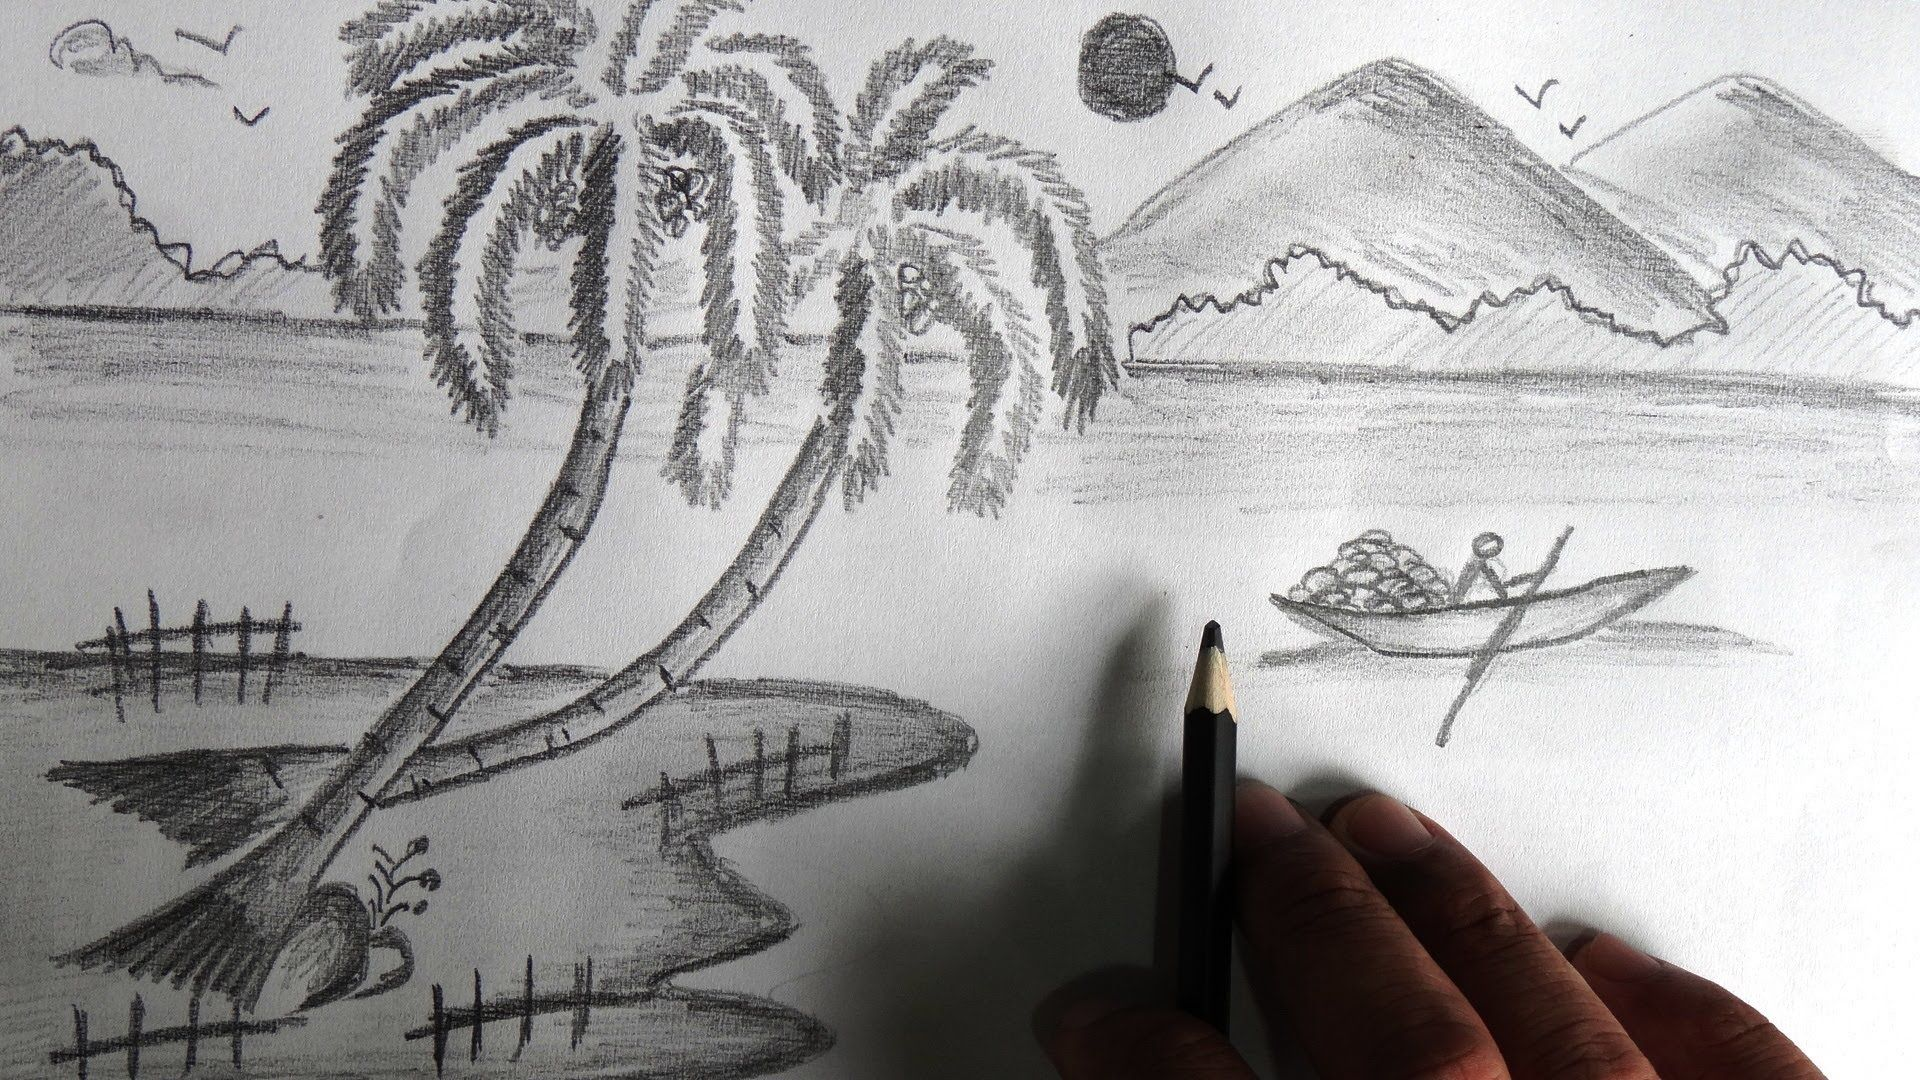 Scenery shape drawing pencil sketch